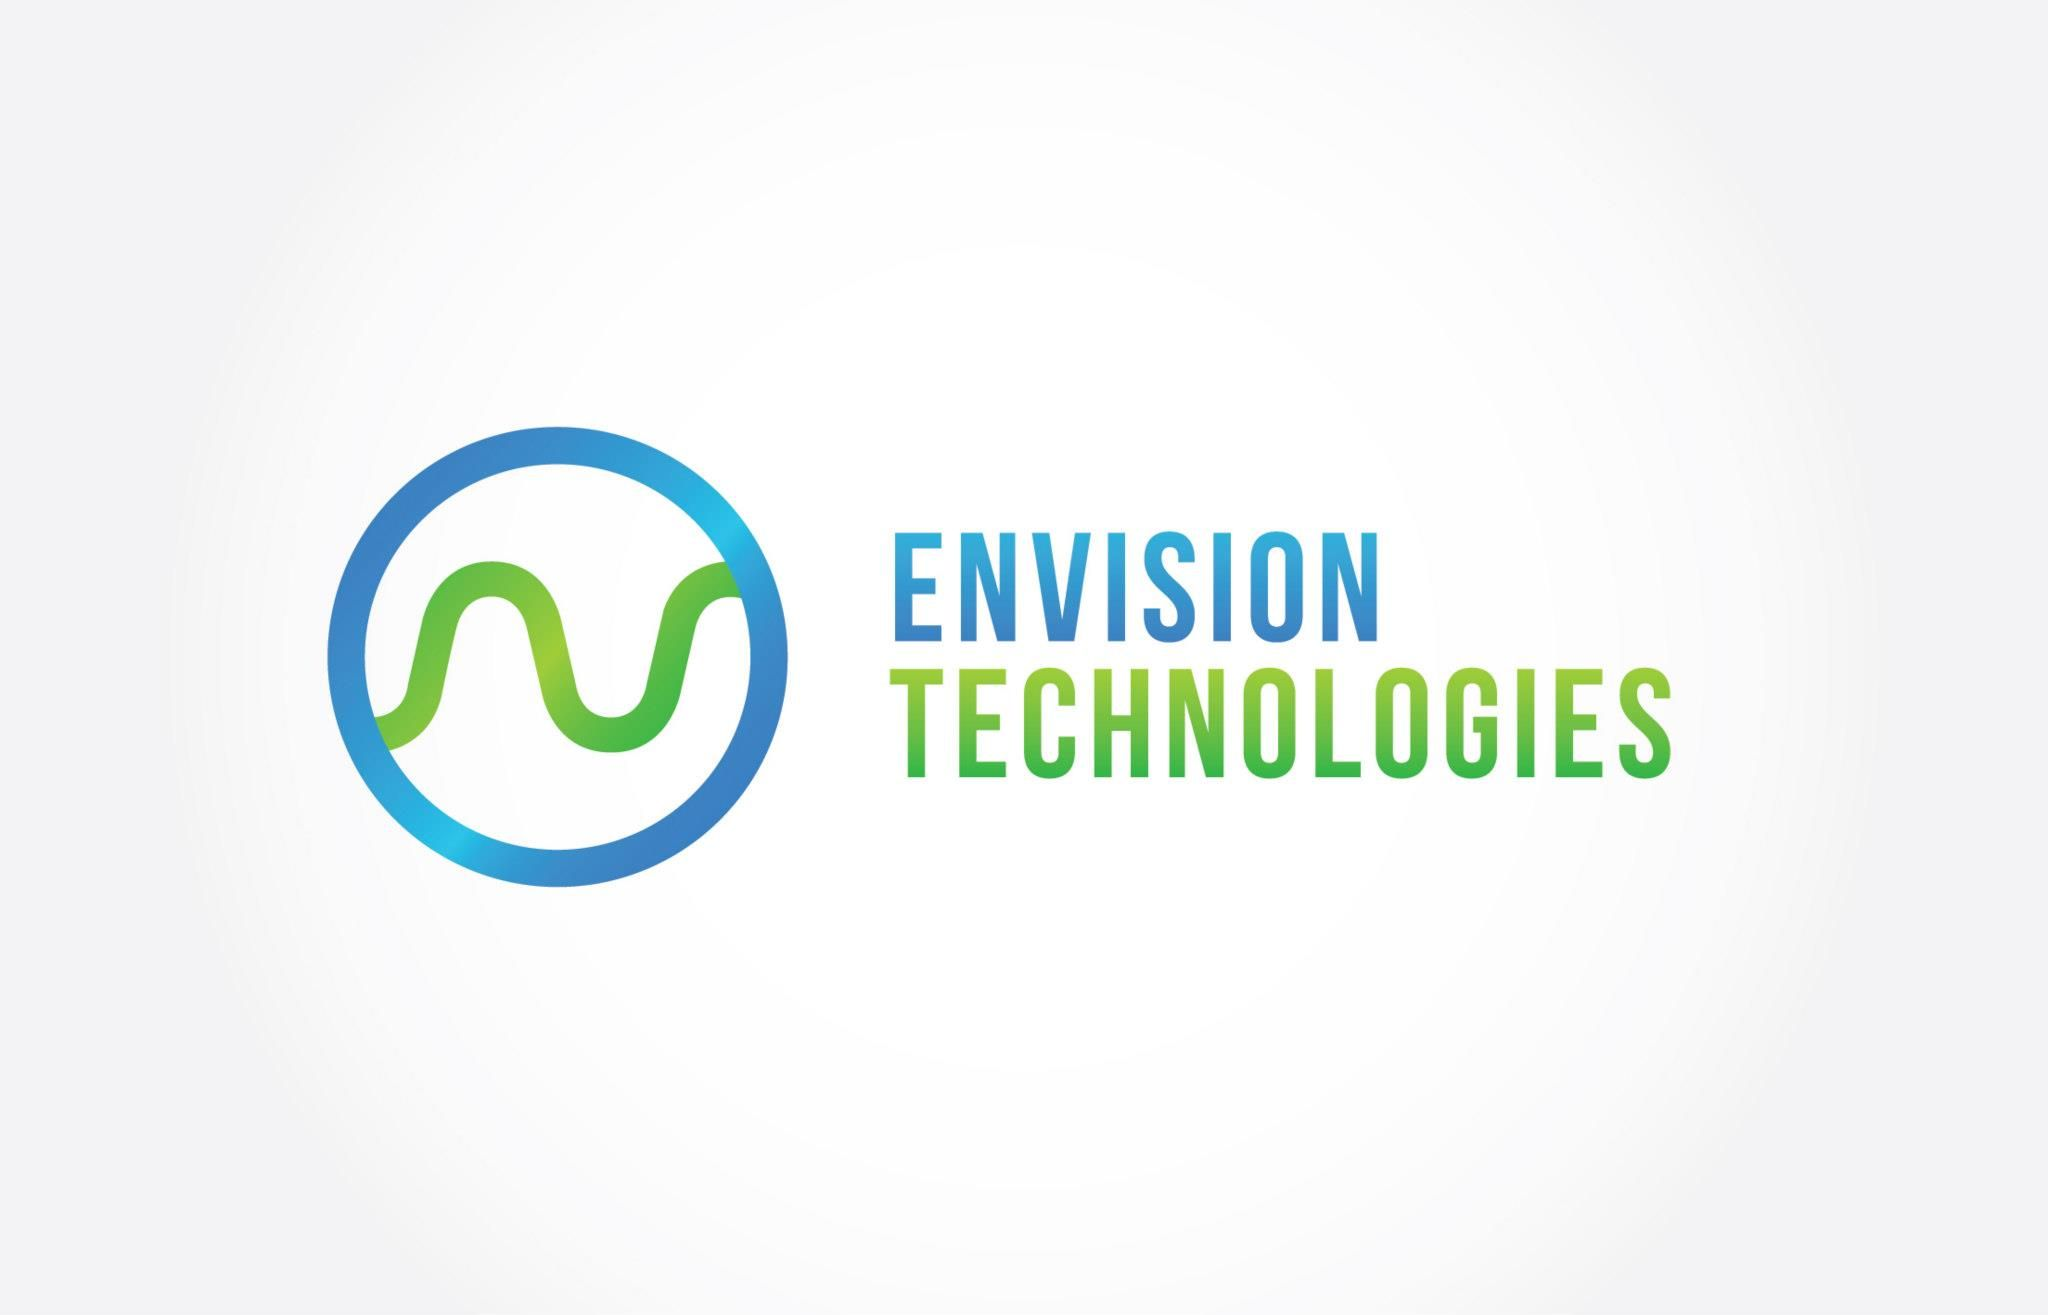 http://www.cognizjobs.com/company/envision-engineering-technologies